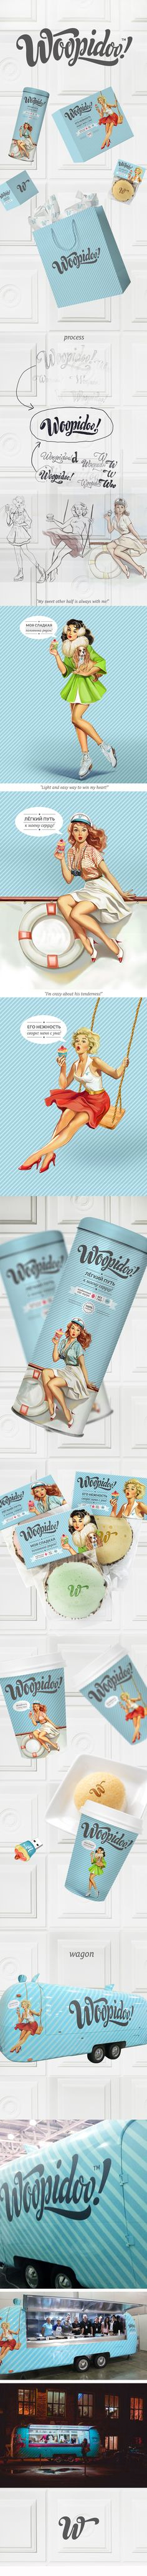 How fabulous is this American-retro 1950s-style identity for Woopidoo? Woopidoo is a chain of mobile cafes, selling unique desserts in Moscow. Art directed by Valerya Polubiatko?